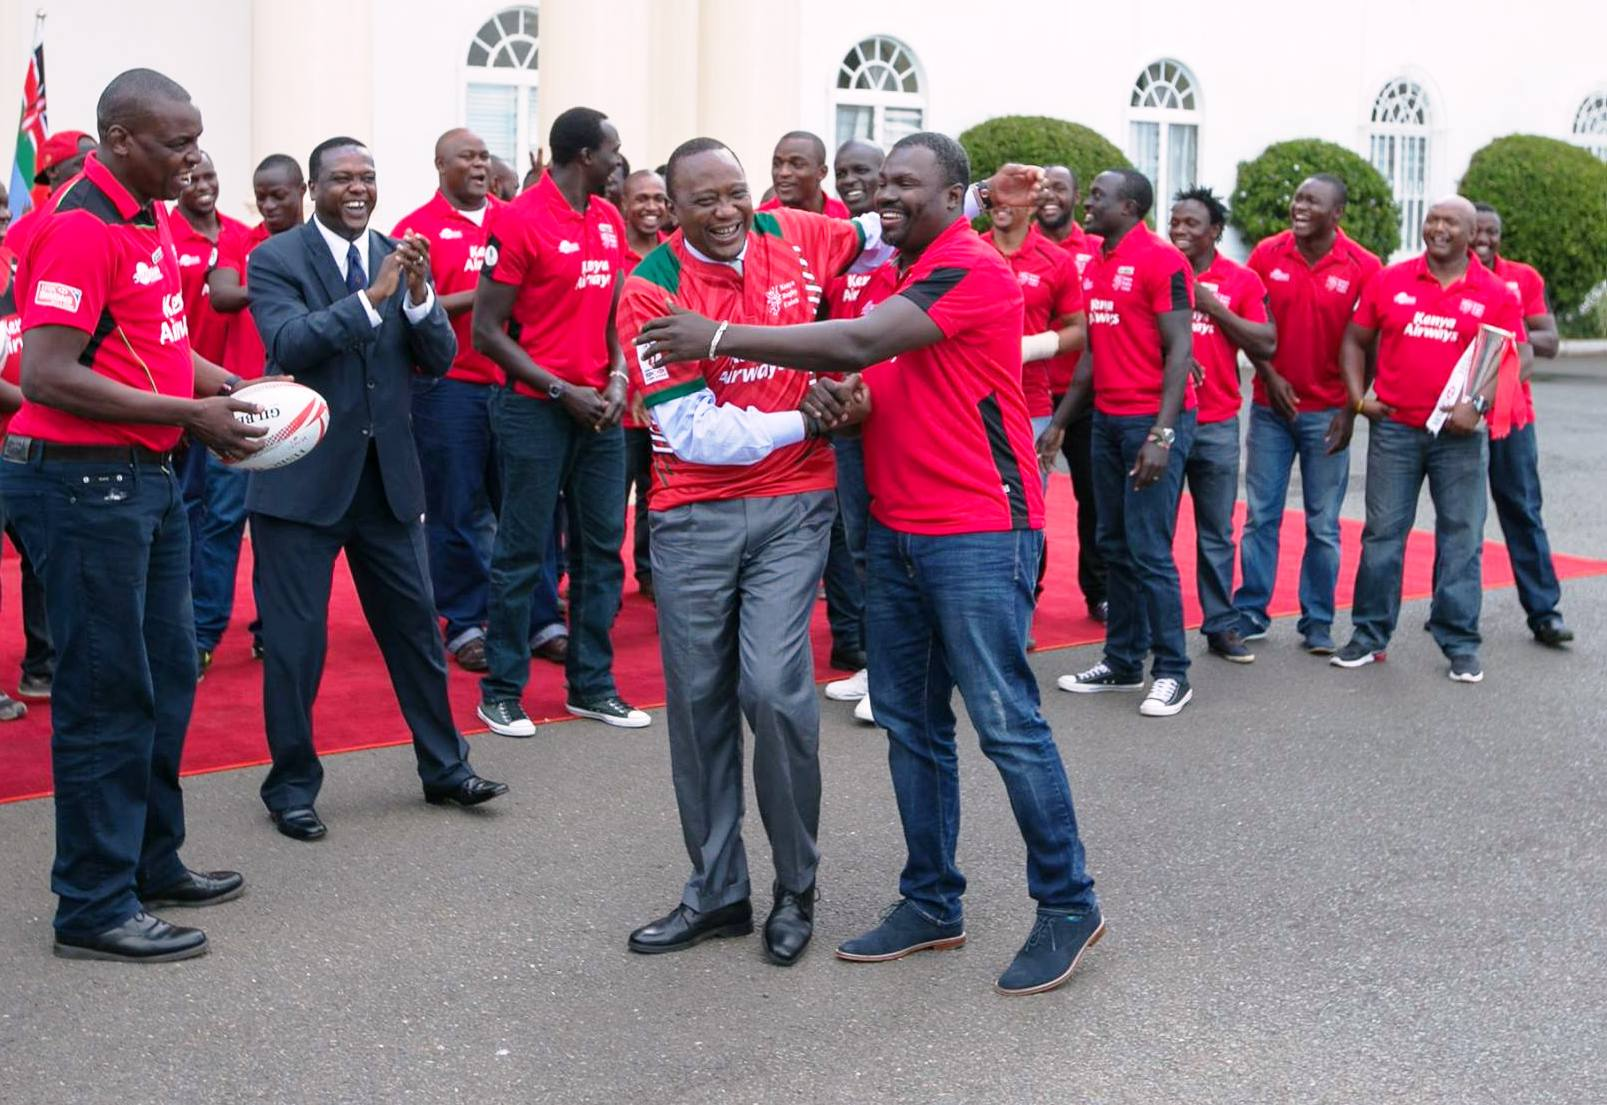 When the Kenya 7s team was up there with the top sides in the world, even President Uhuru Kenyatta (front in white sleeves) was happy with it, inviting the squad to State House